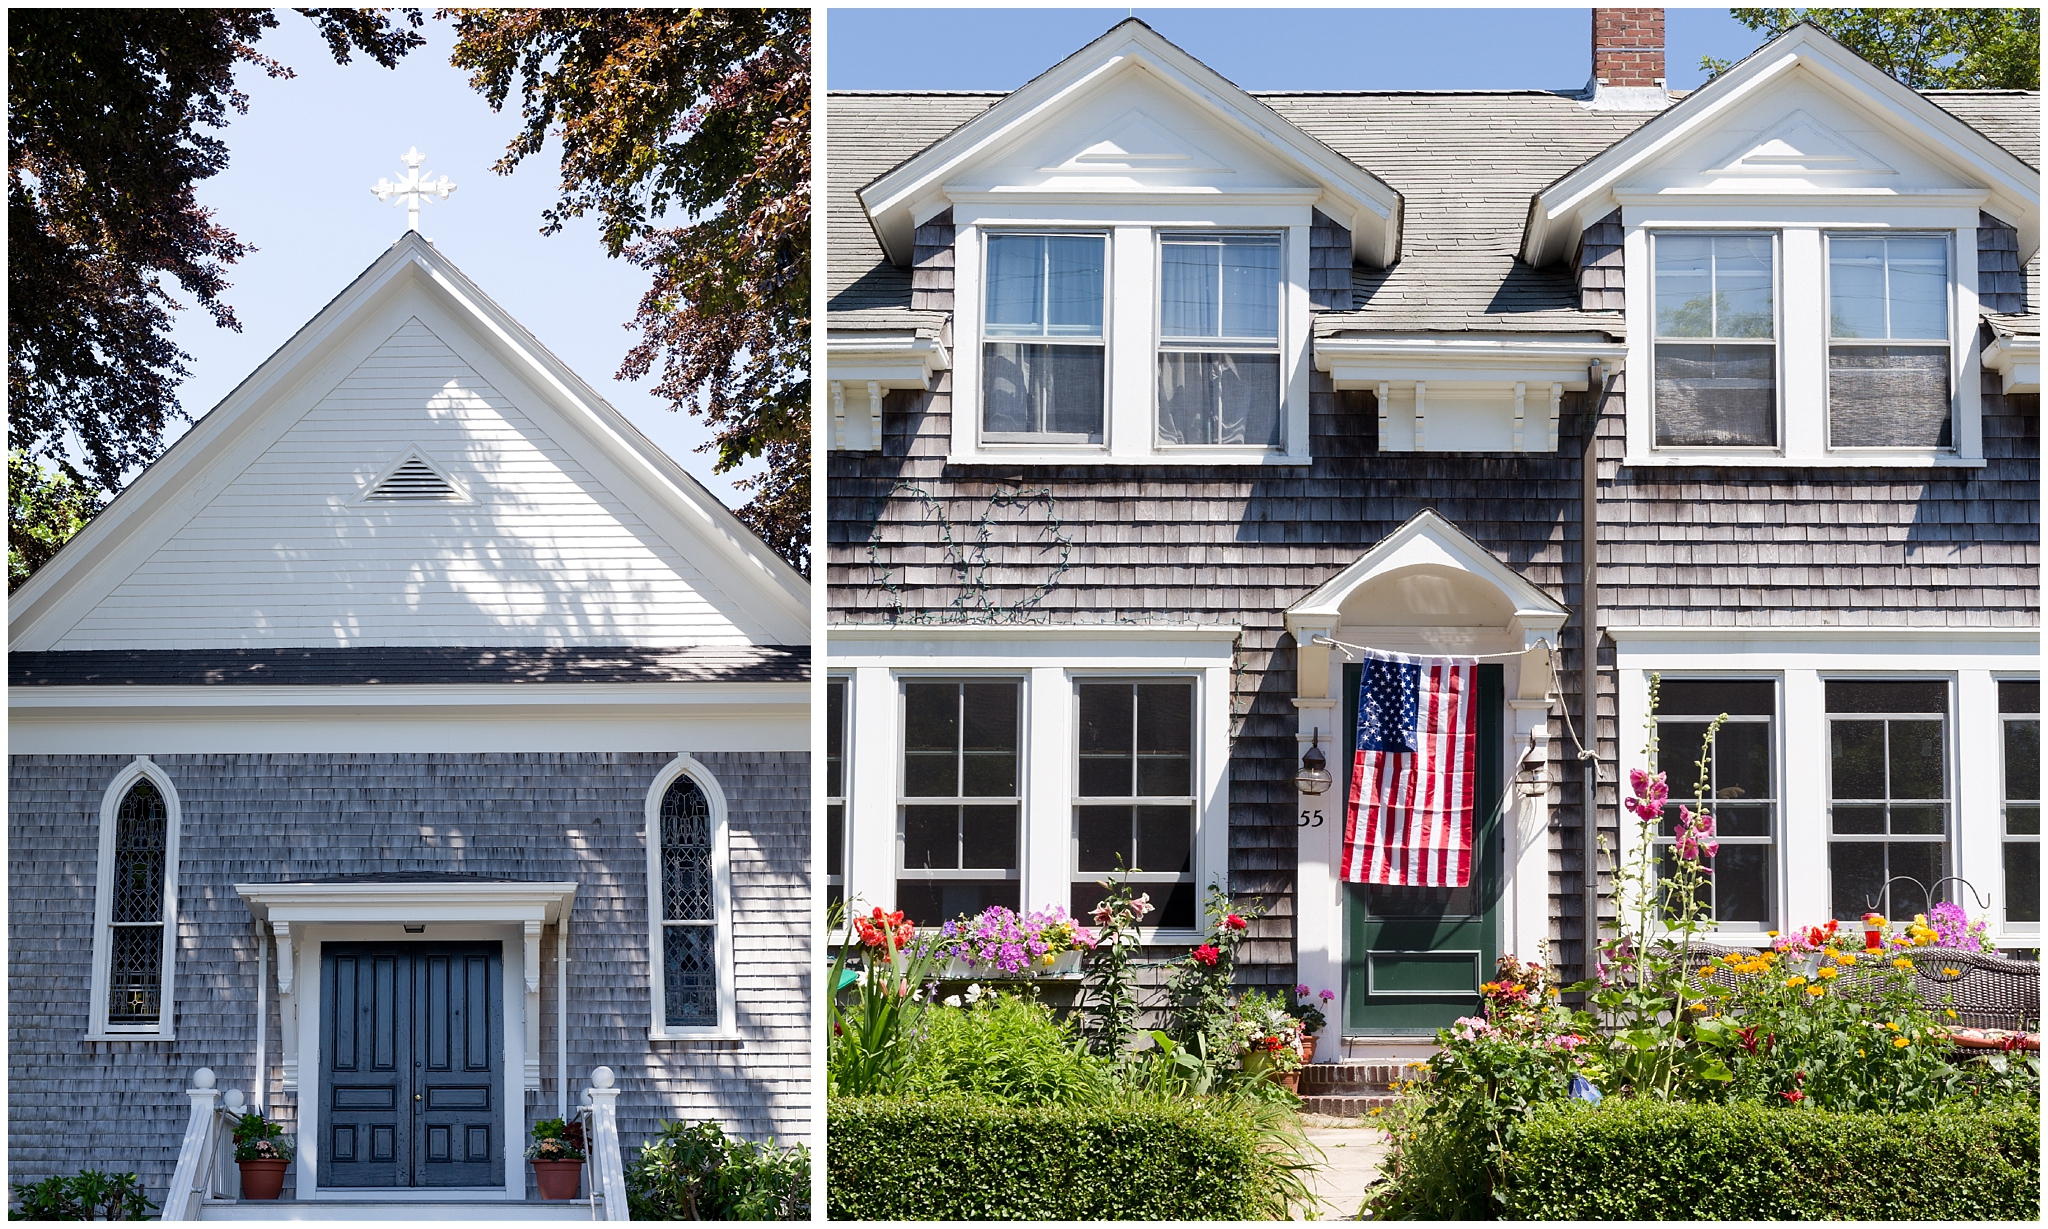 charming architecture in Woods Hole, Massachusetts